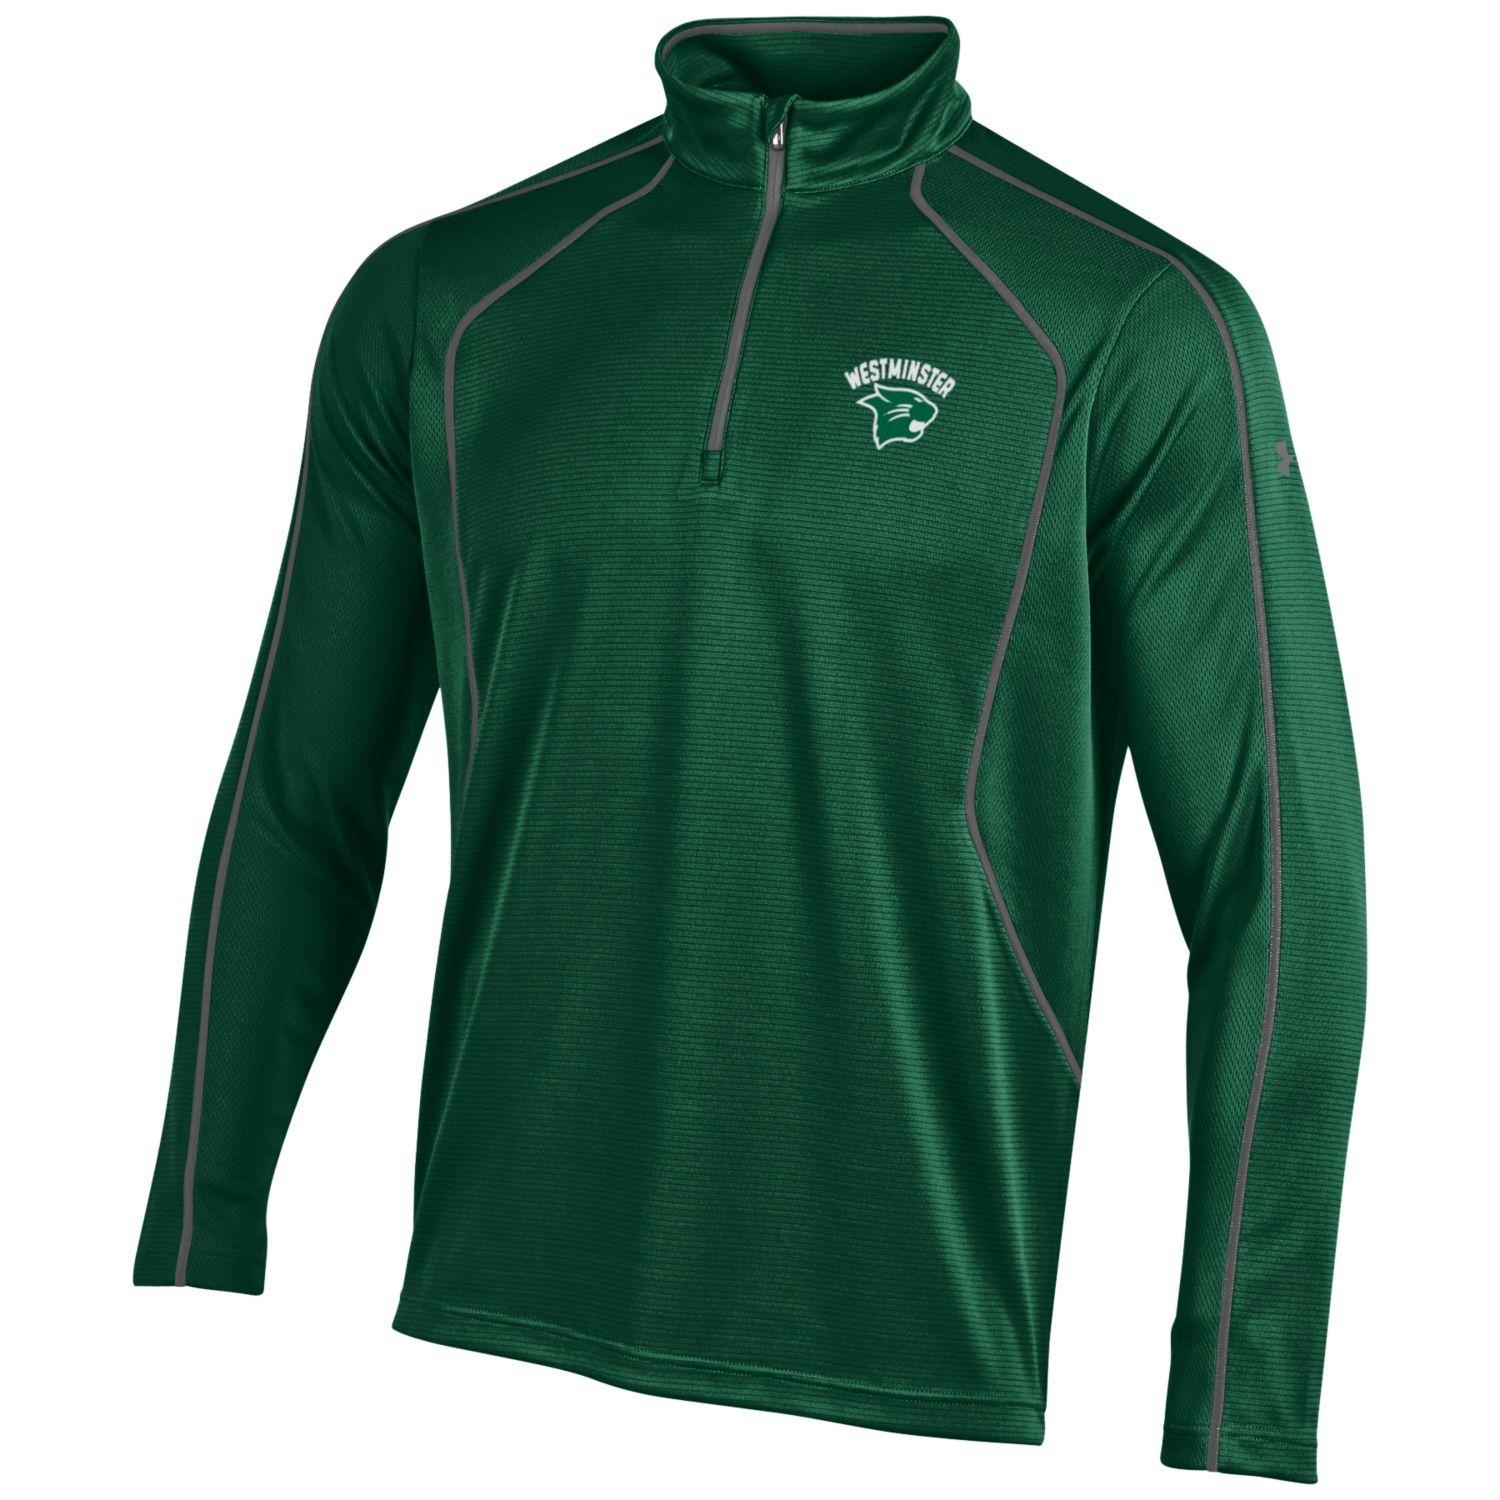 Under Armour Pullover: UA Forest Green 1/4 Zip w/logo covered zipper top